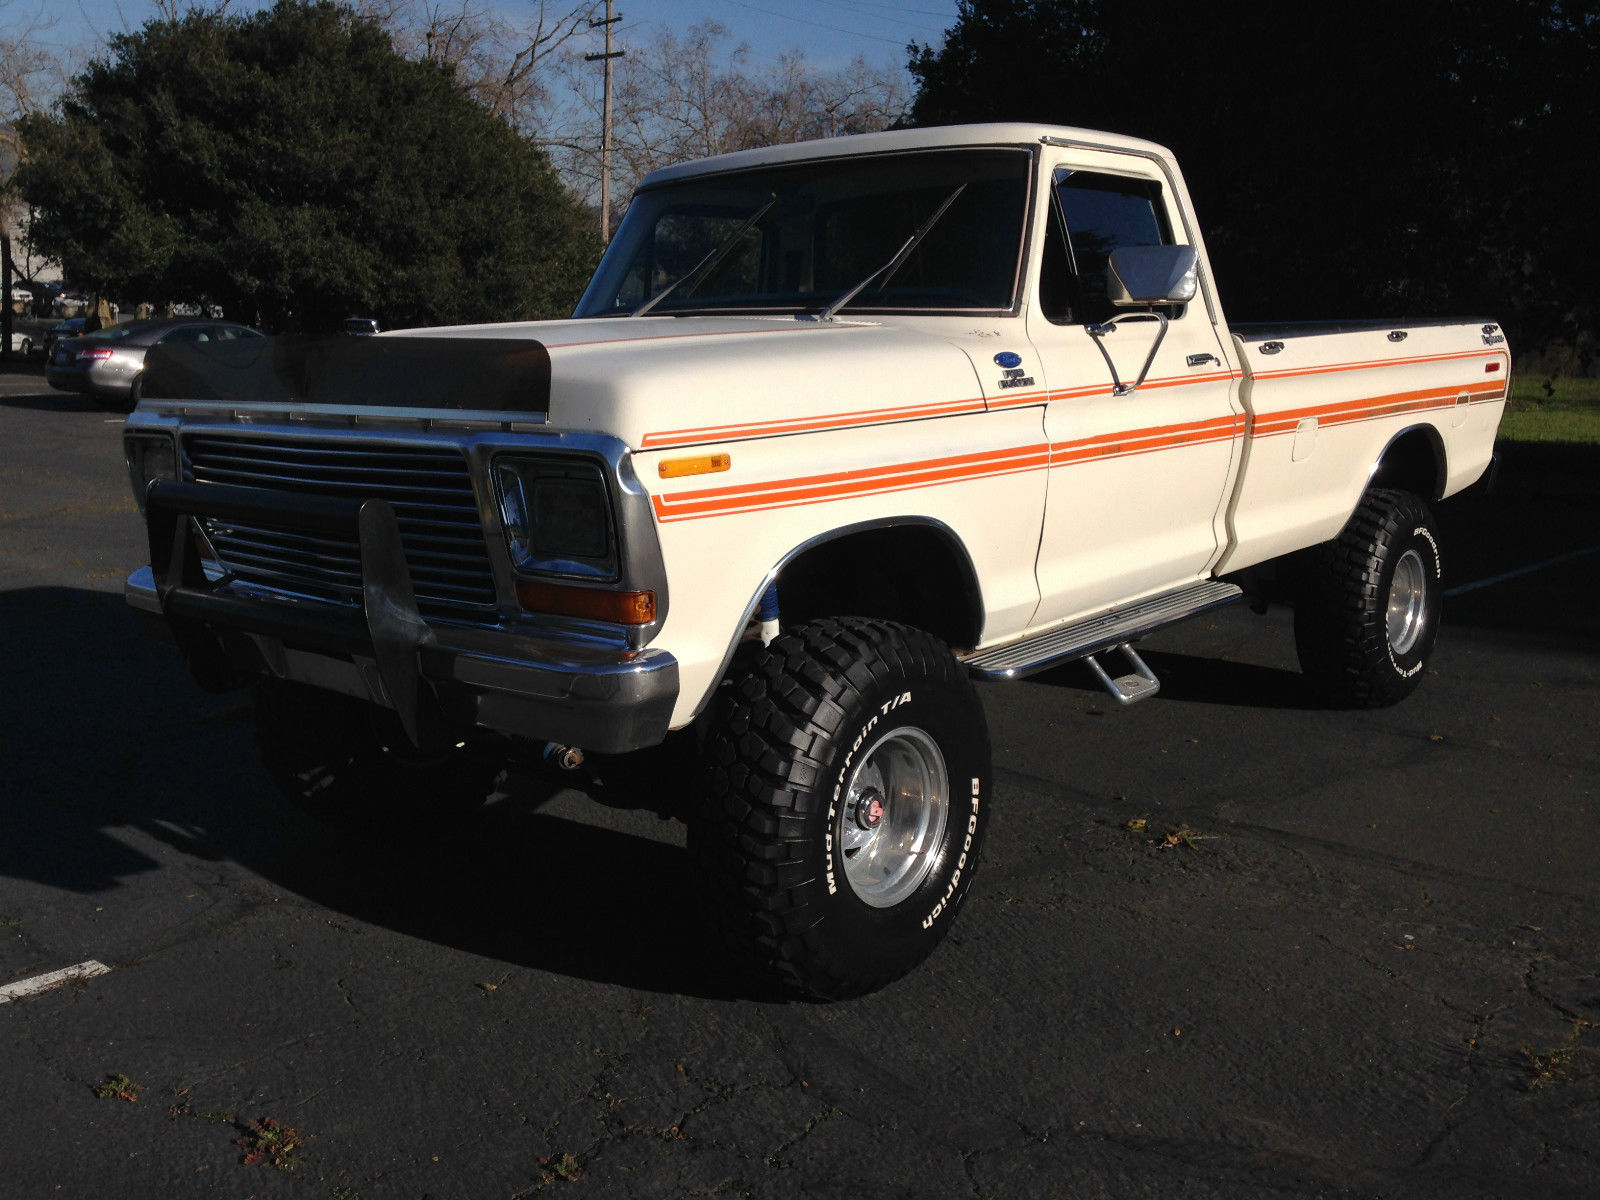 1979 Ford F 150 4x4 Explorer Lifted Longbed Pickup Very Nice